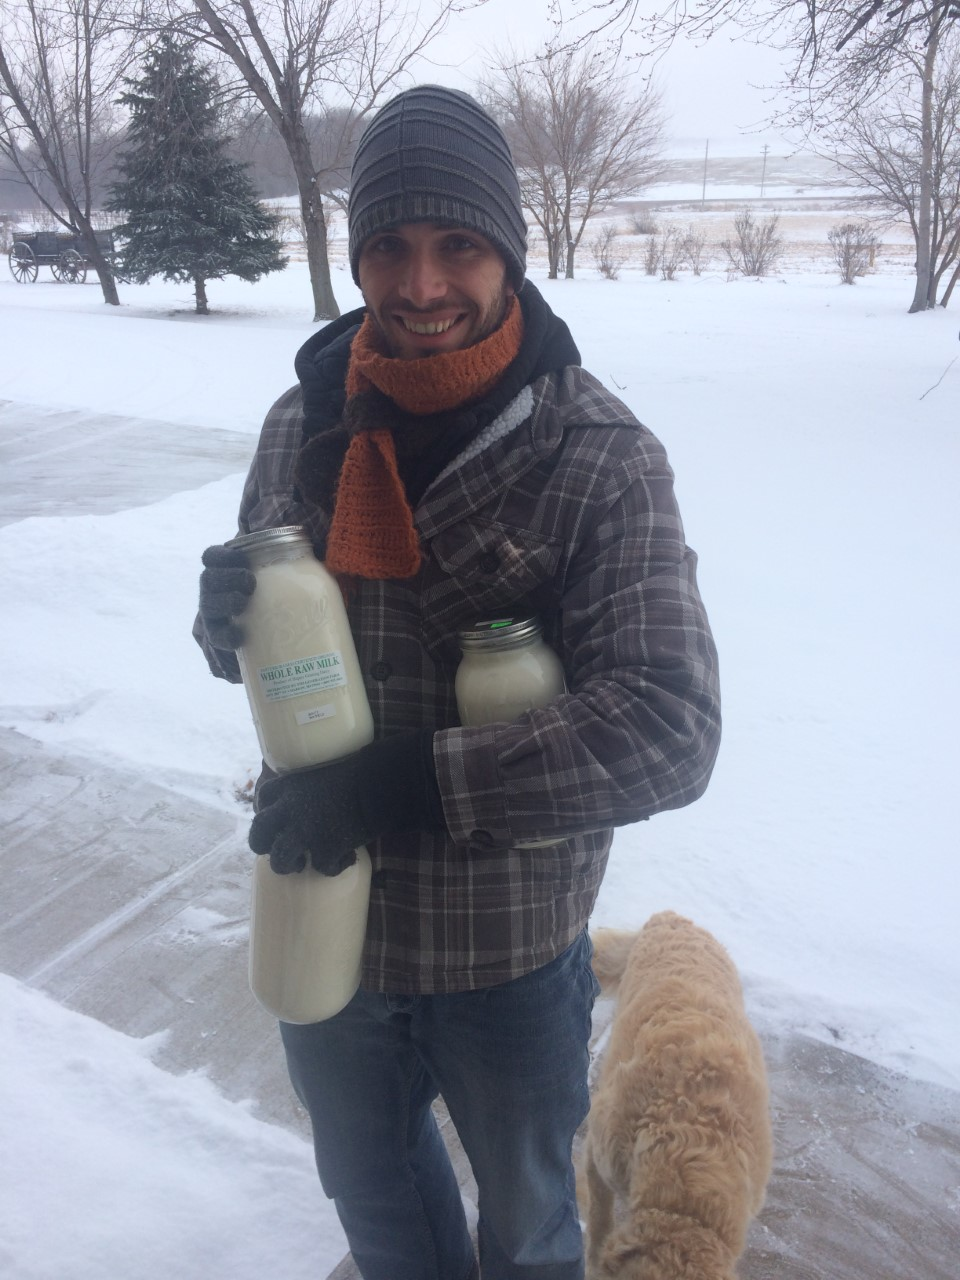 Our dedicated milkman Andre braves the weather to bring us our milk!